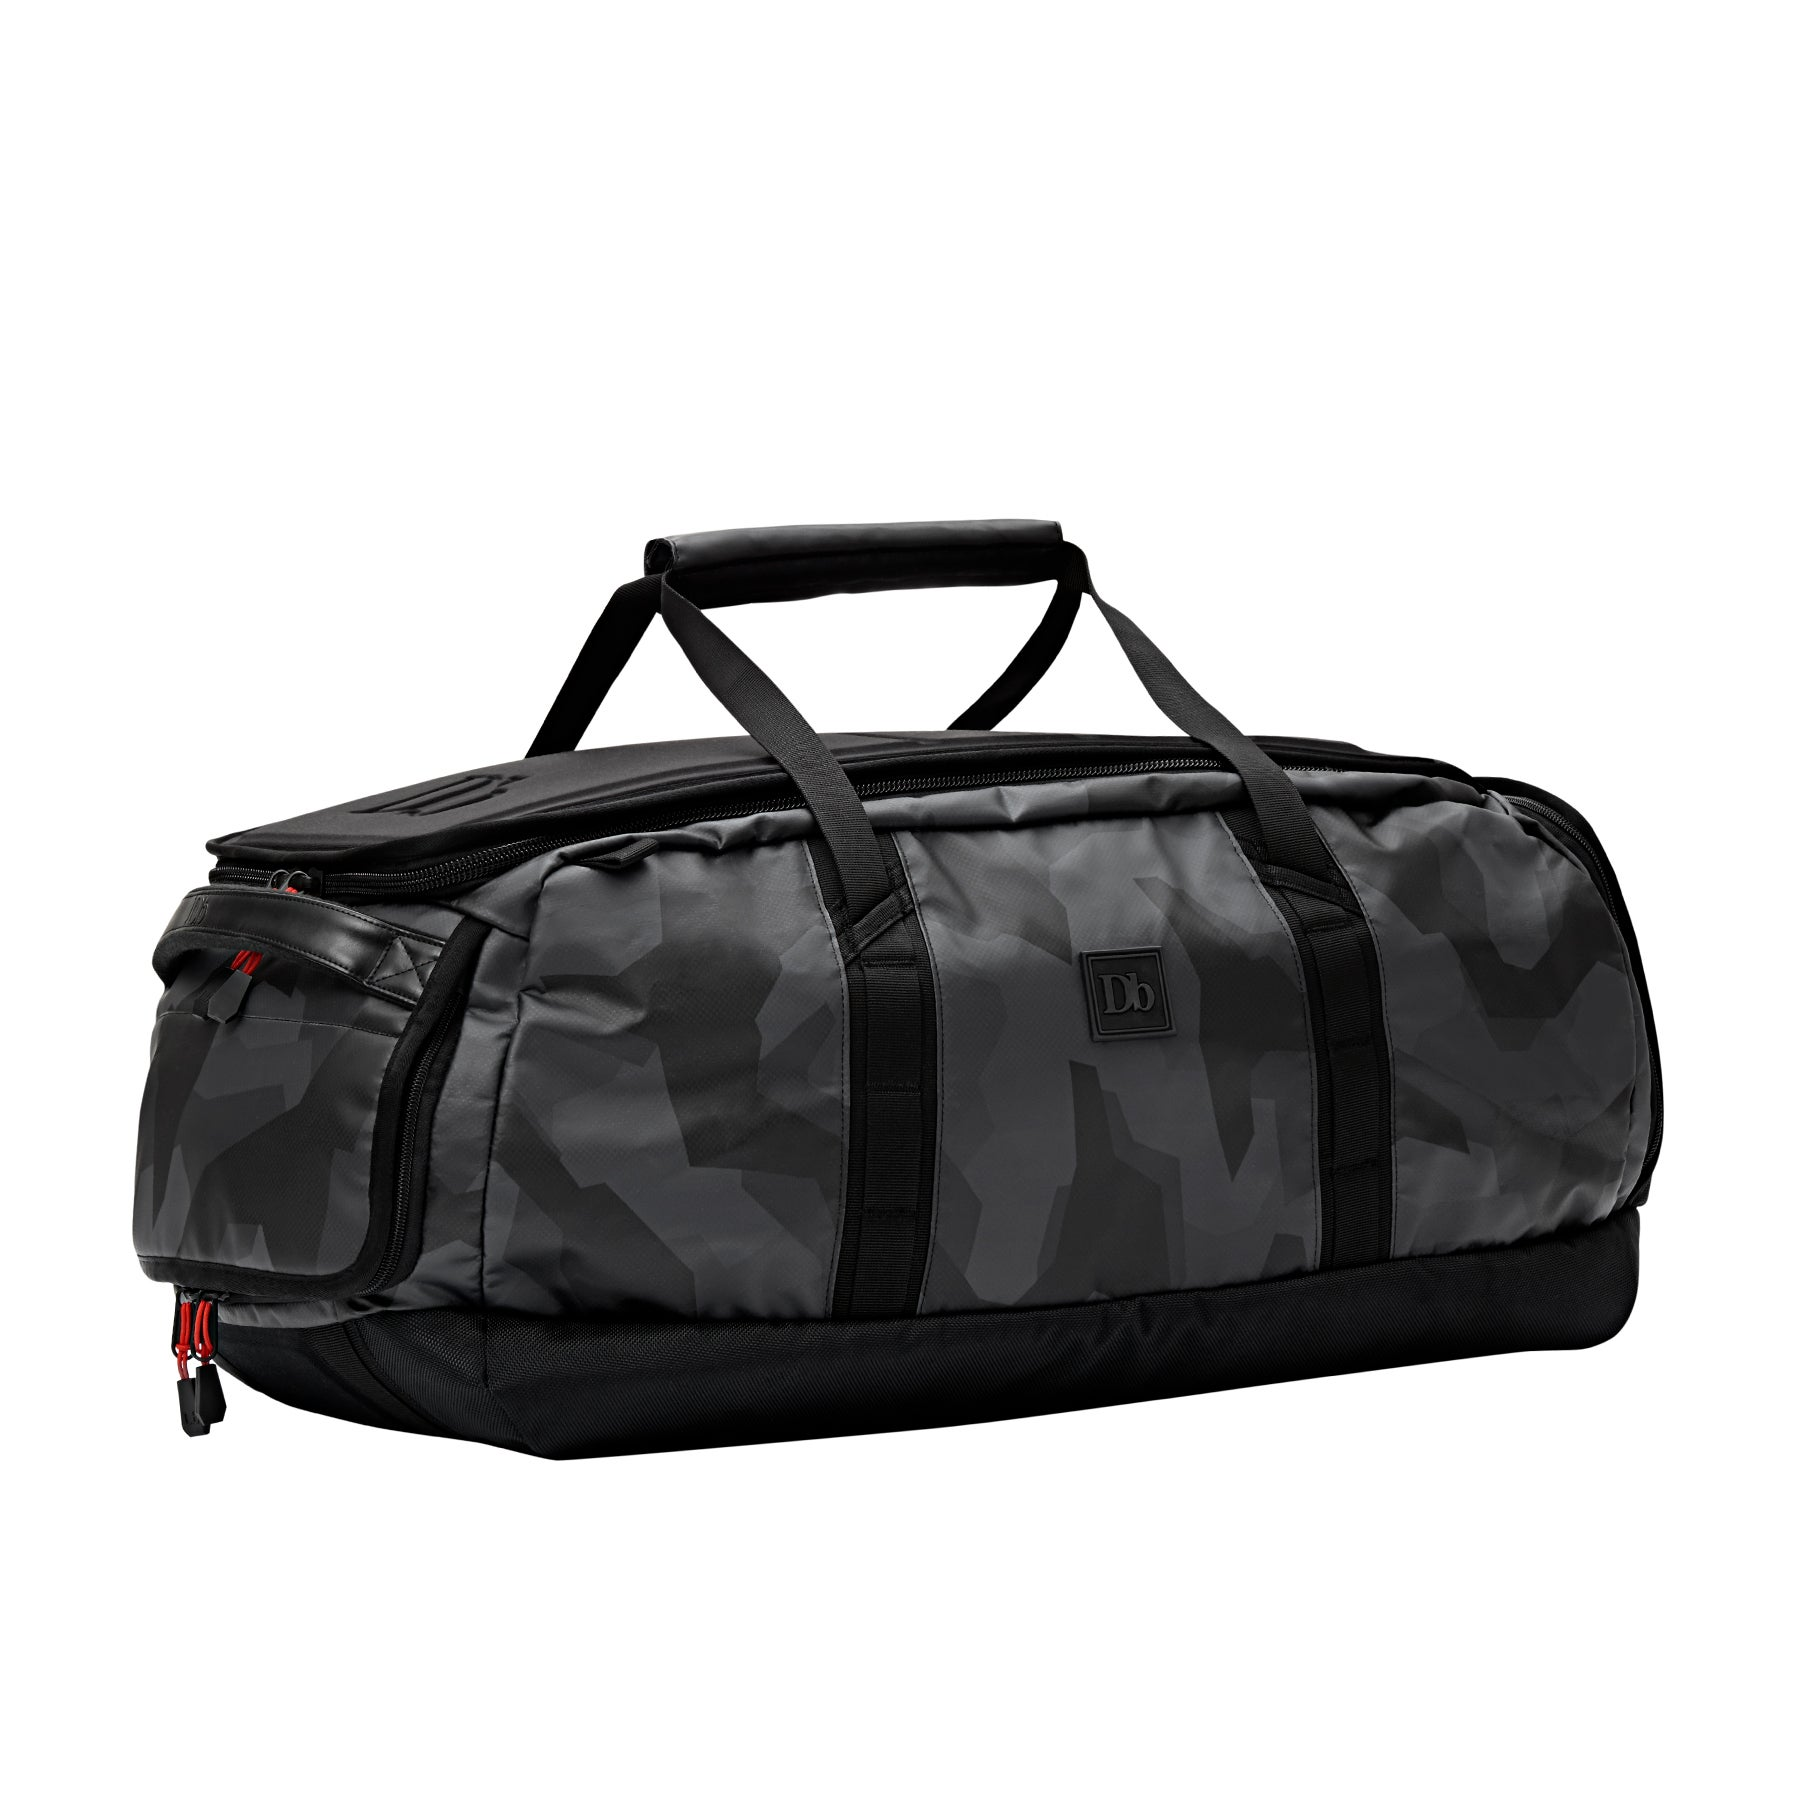 Douchebags Carryall 65l Duffle Bag - Black Camo